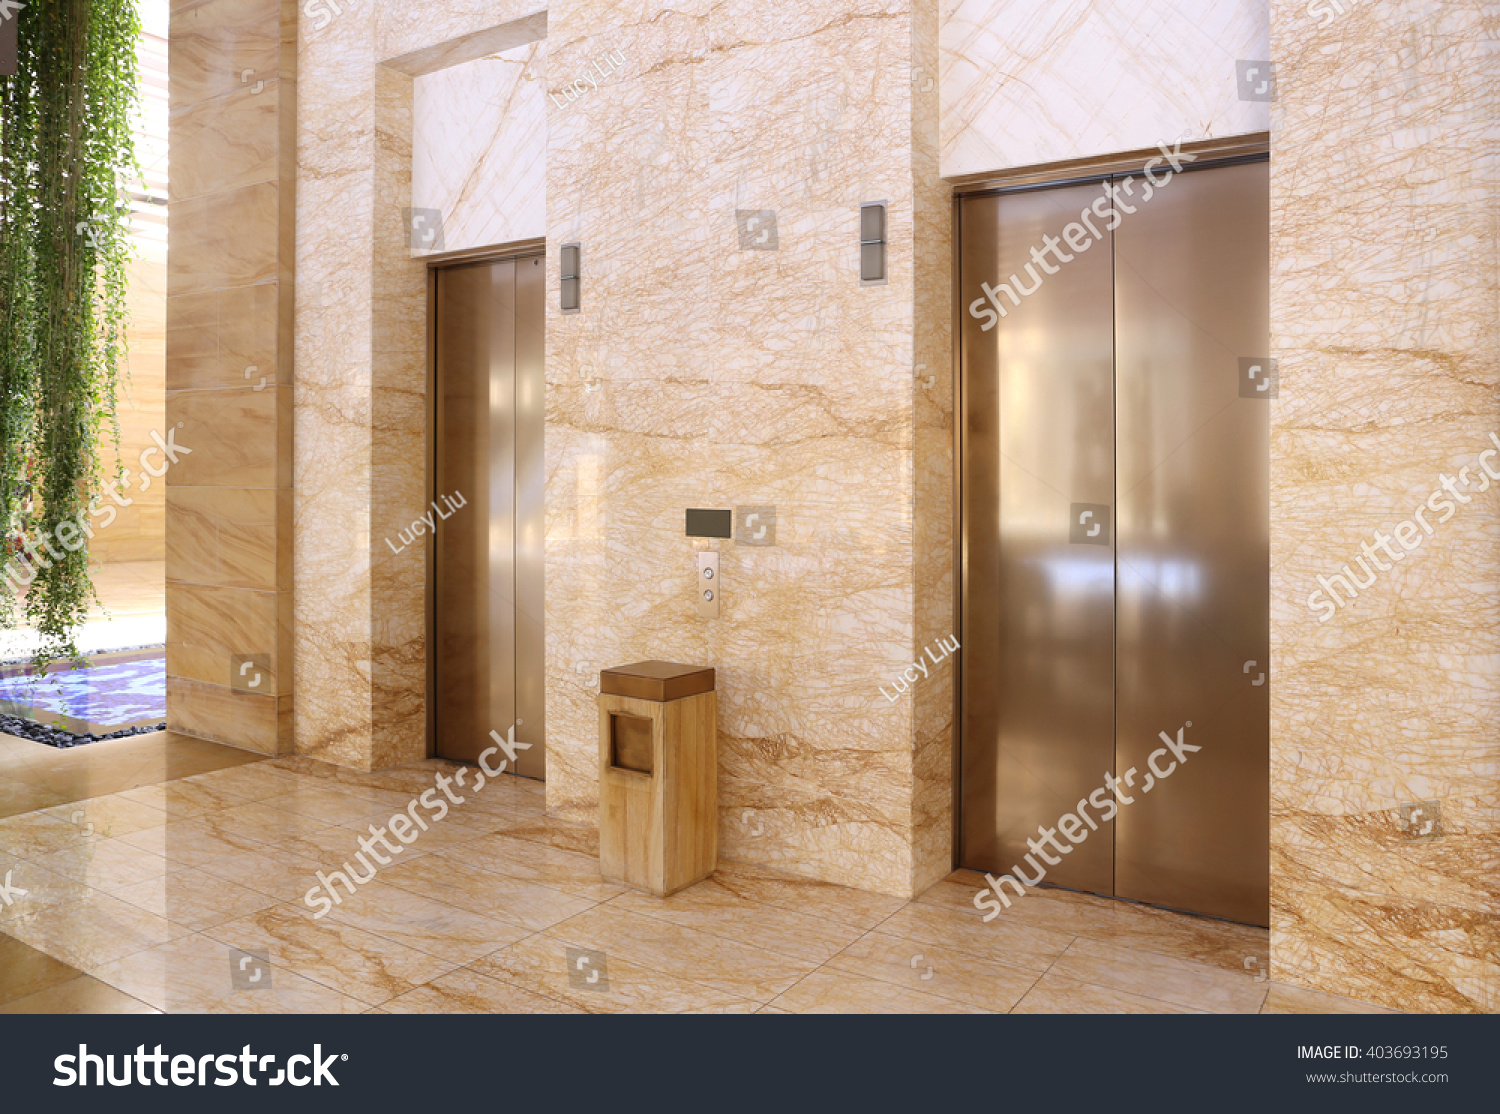 Modern elevator in a commercial building stock photo for Modern elevator design